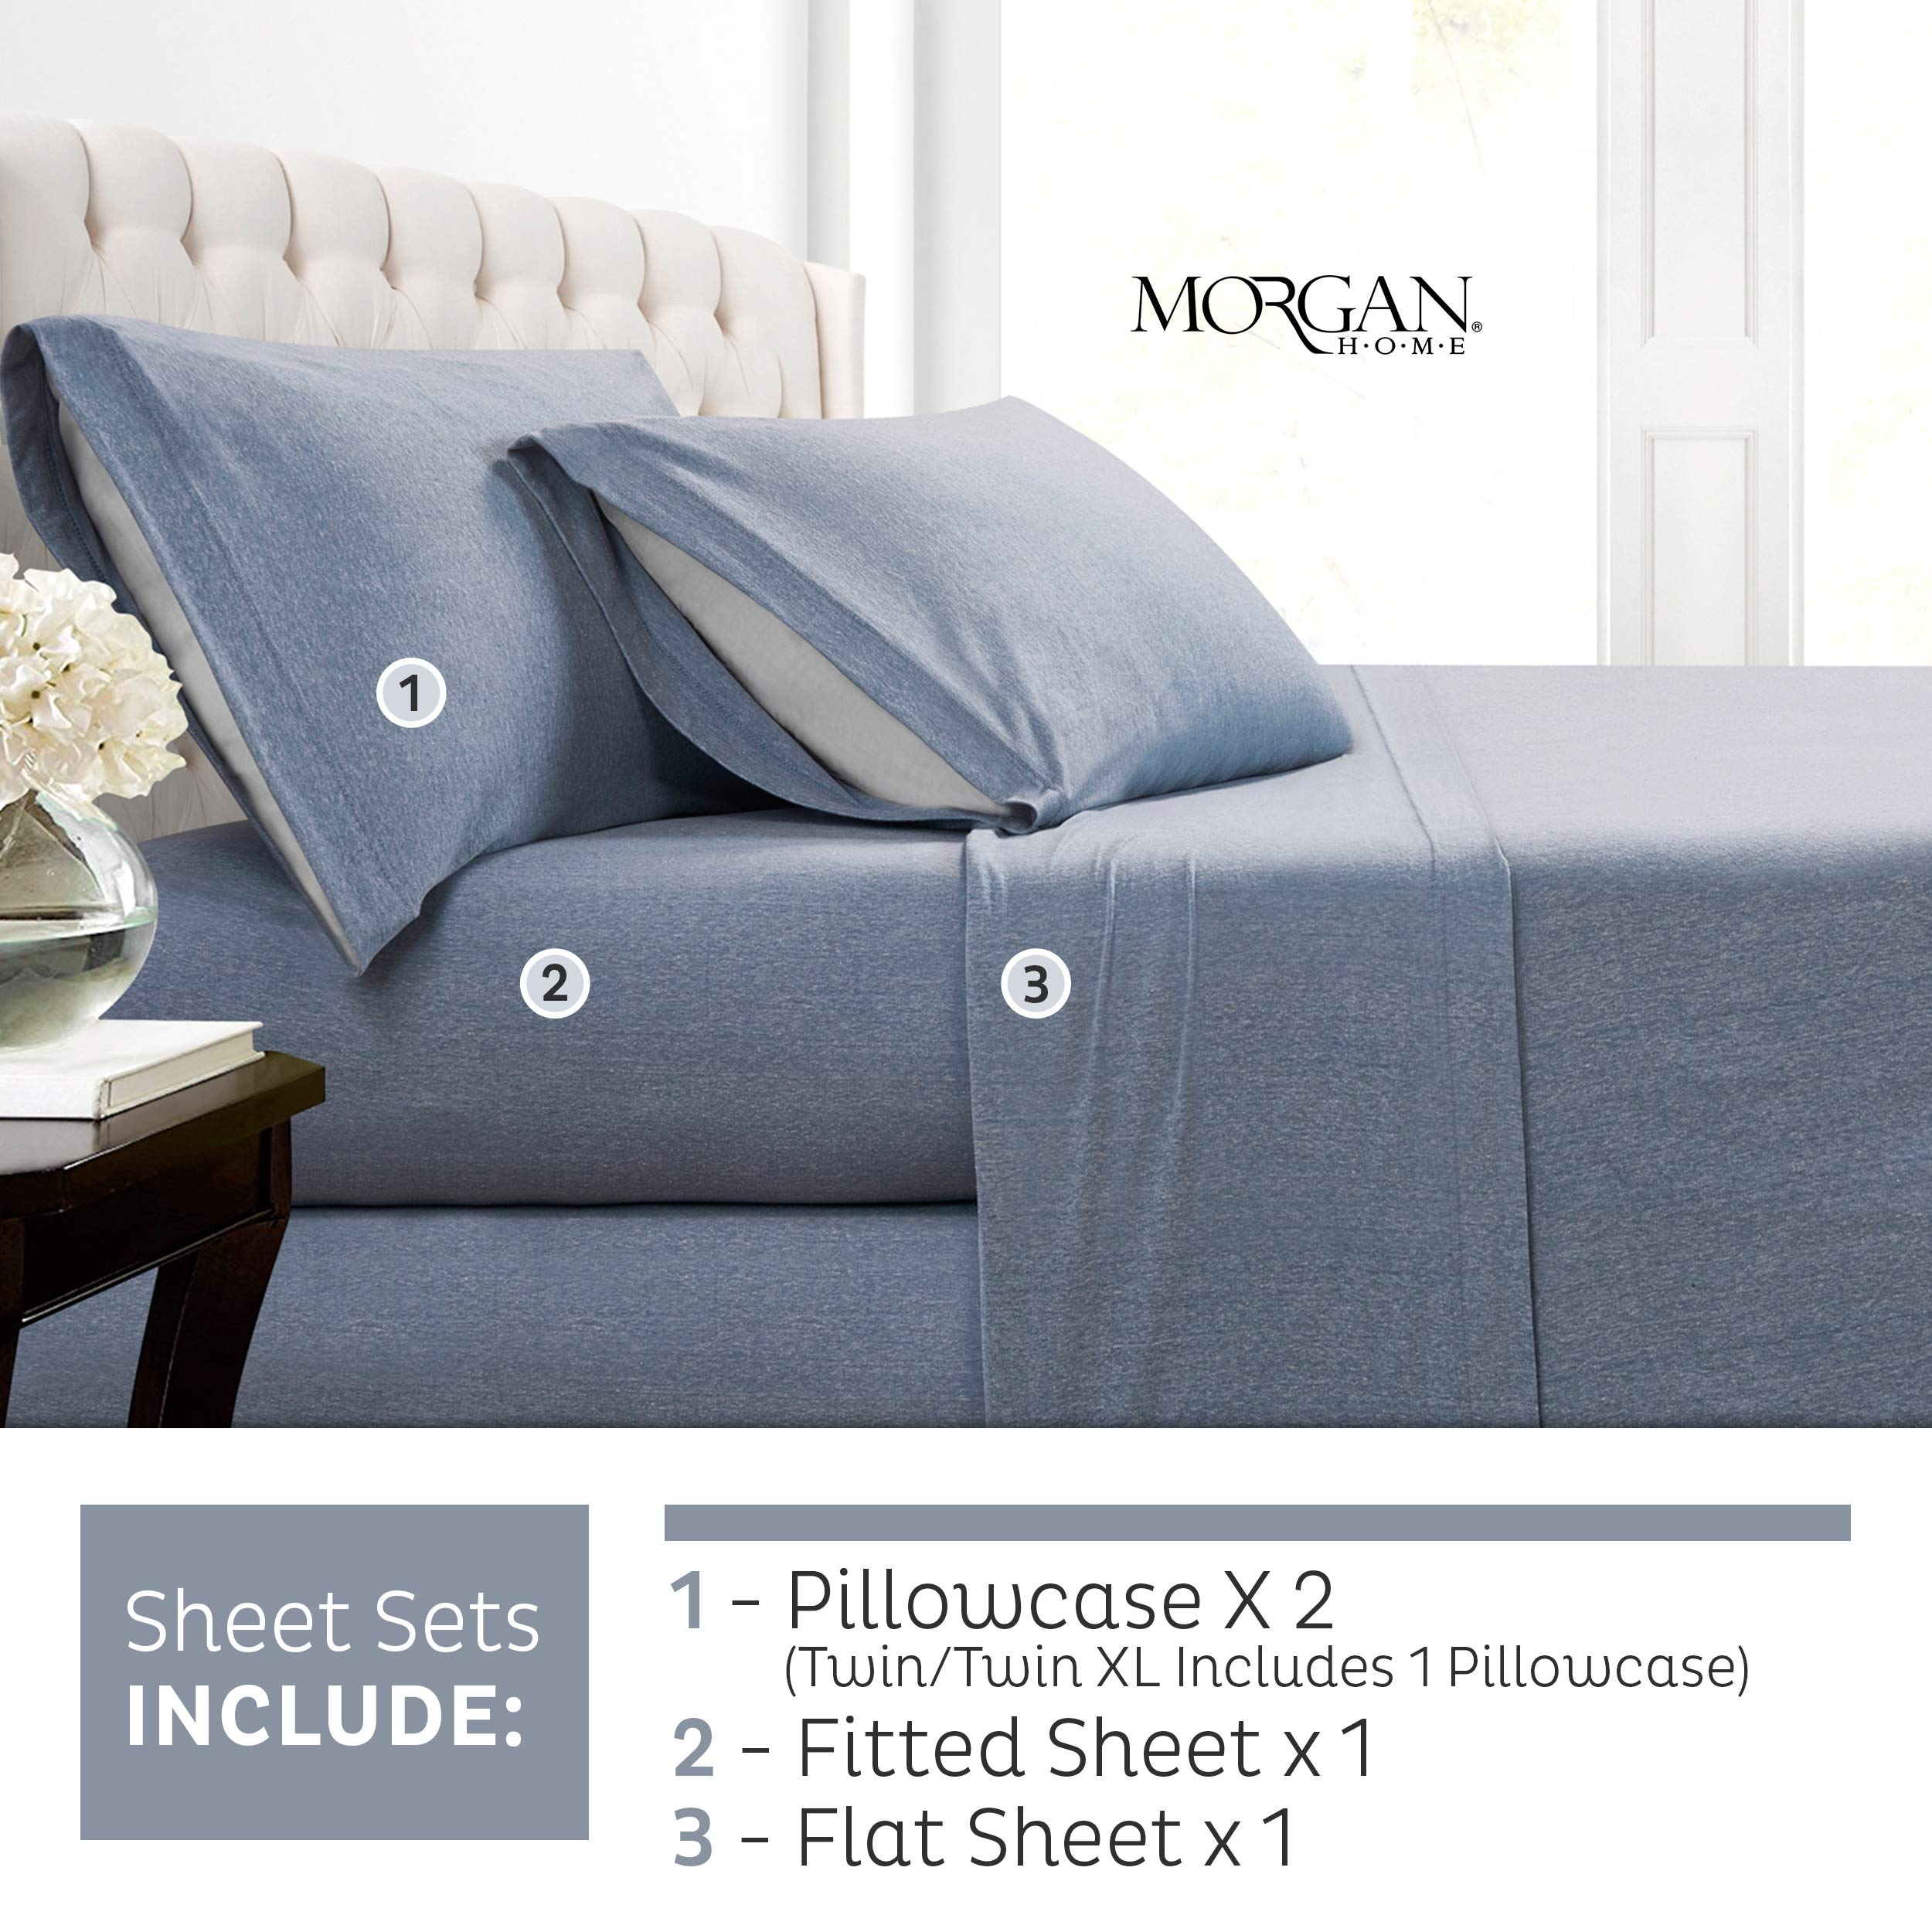 Morgan Home Fashions Cotton Rich T-Shirt Soft Heather Jersey Knit Pillowcases- All Season Bed Sheets,Super Comfortable, Warm and Cozy by Morgan Home (2 Pack Pillowcase, Heather Blue)